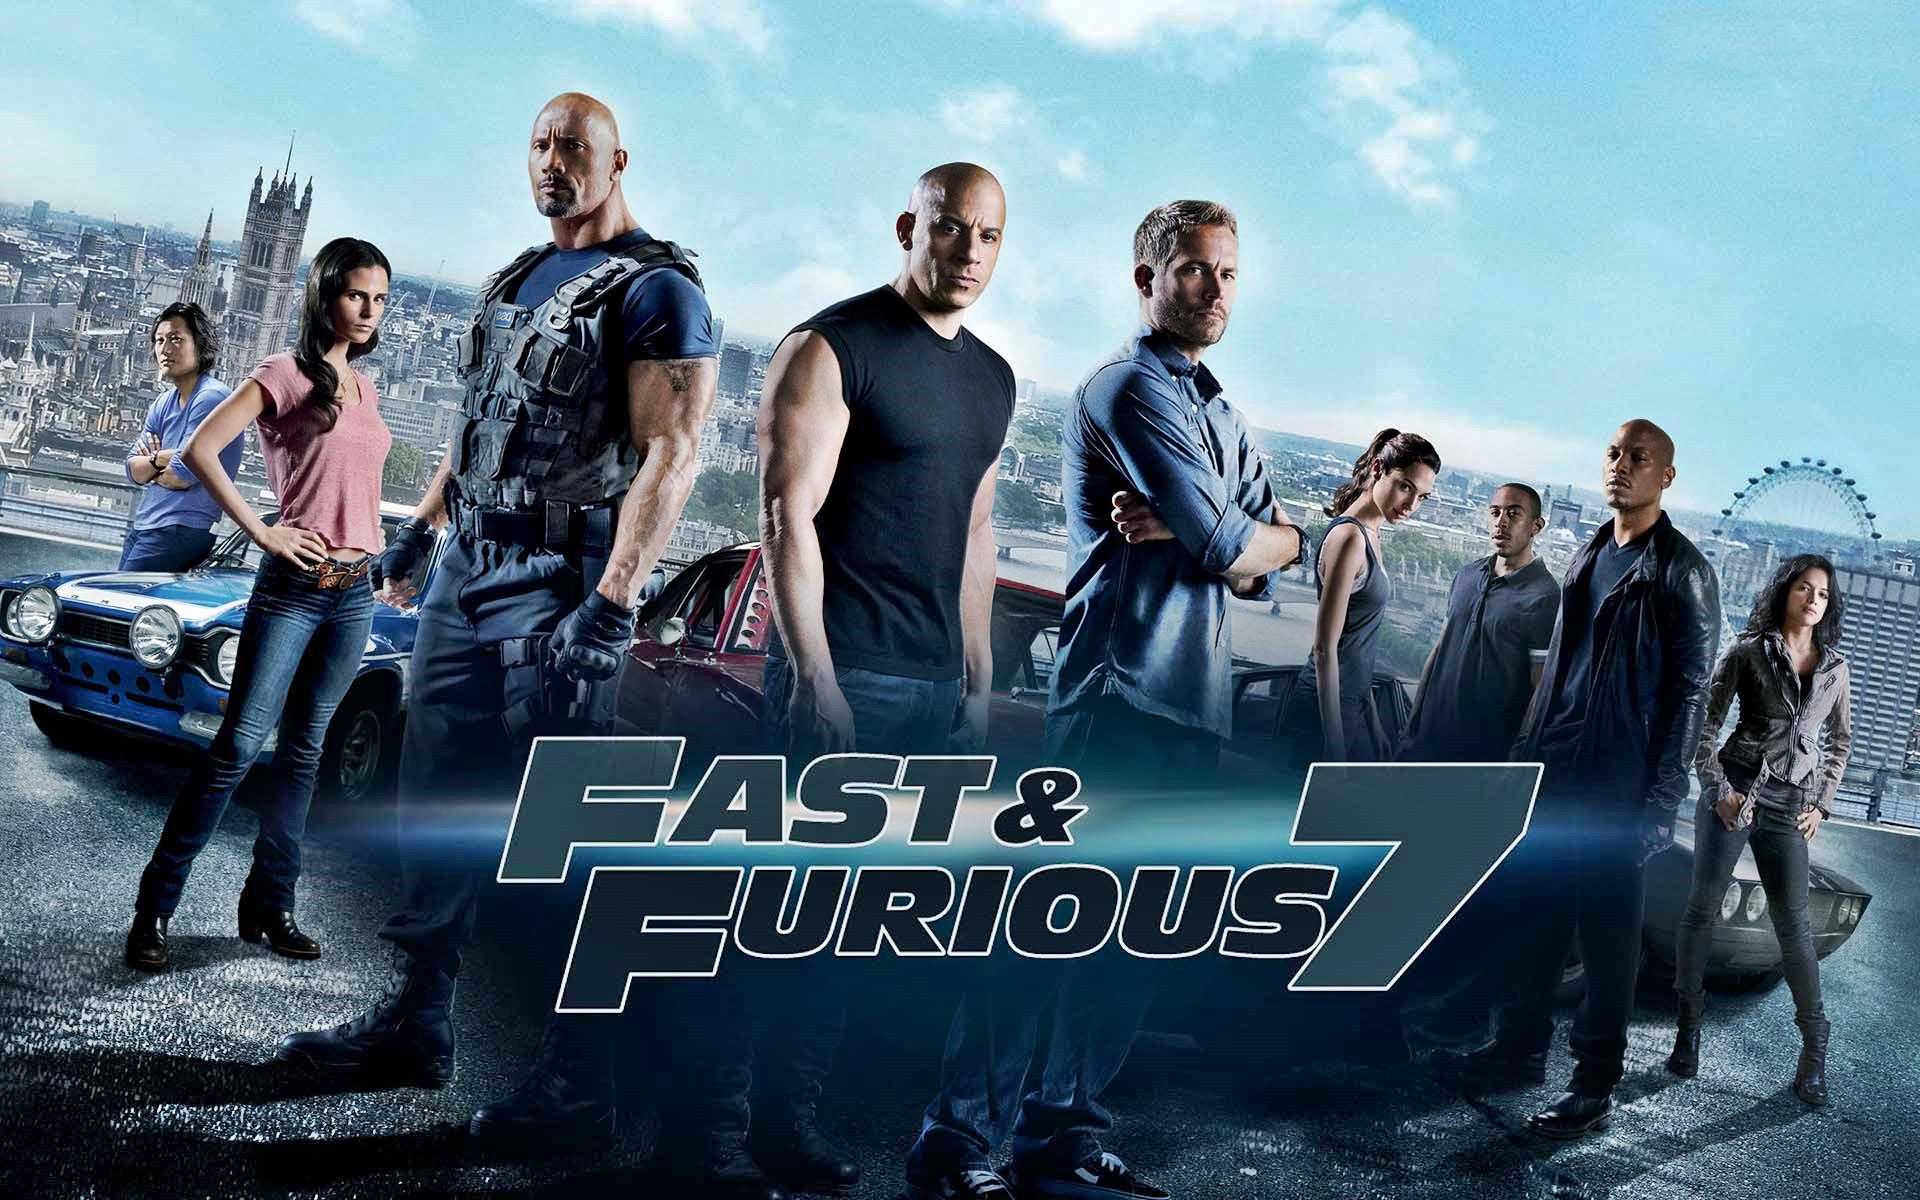 fast and furious 7 3d download full movie free